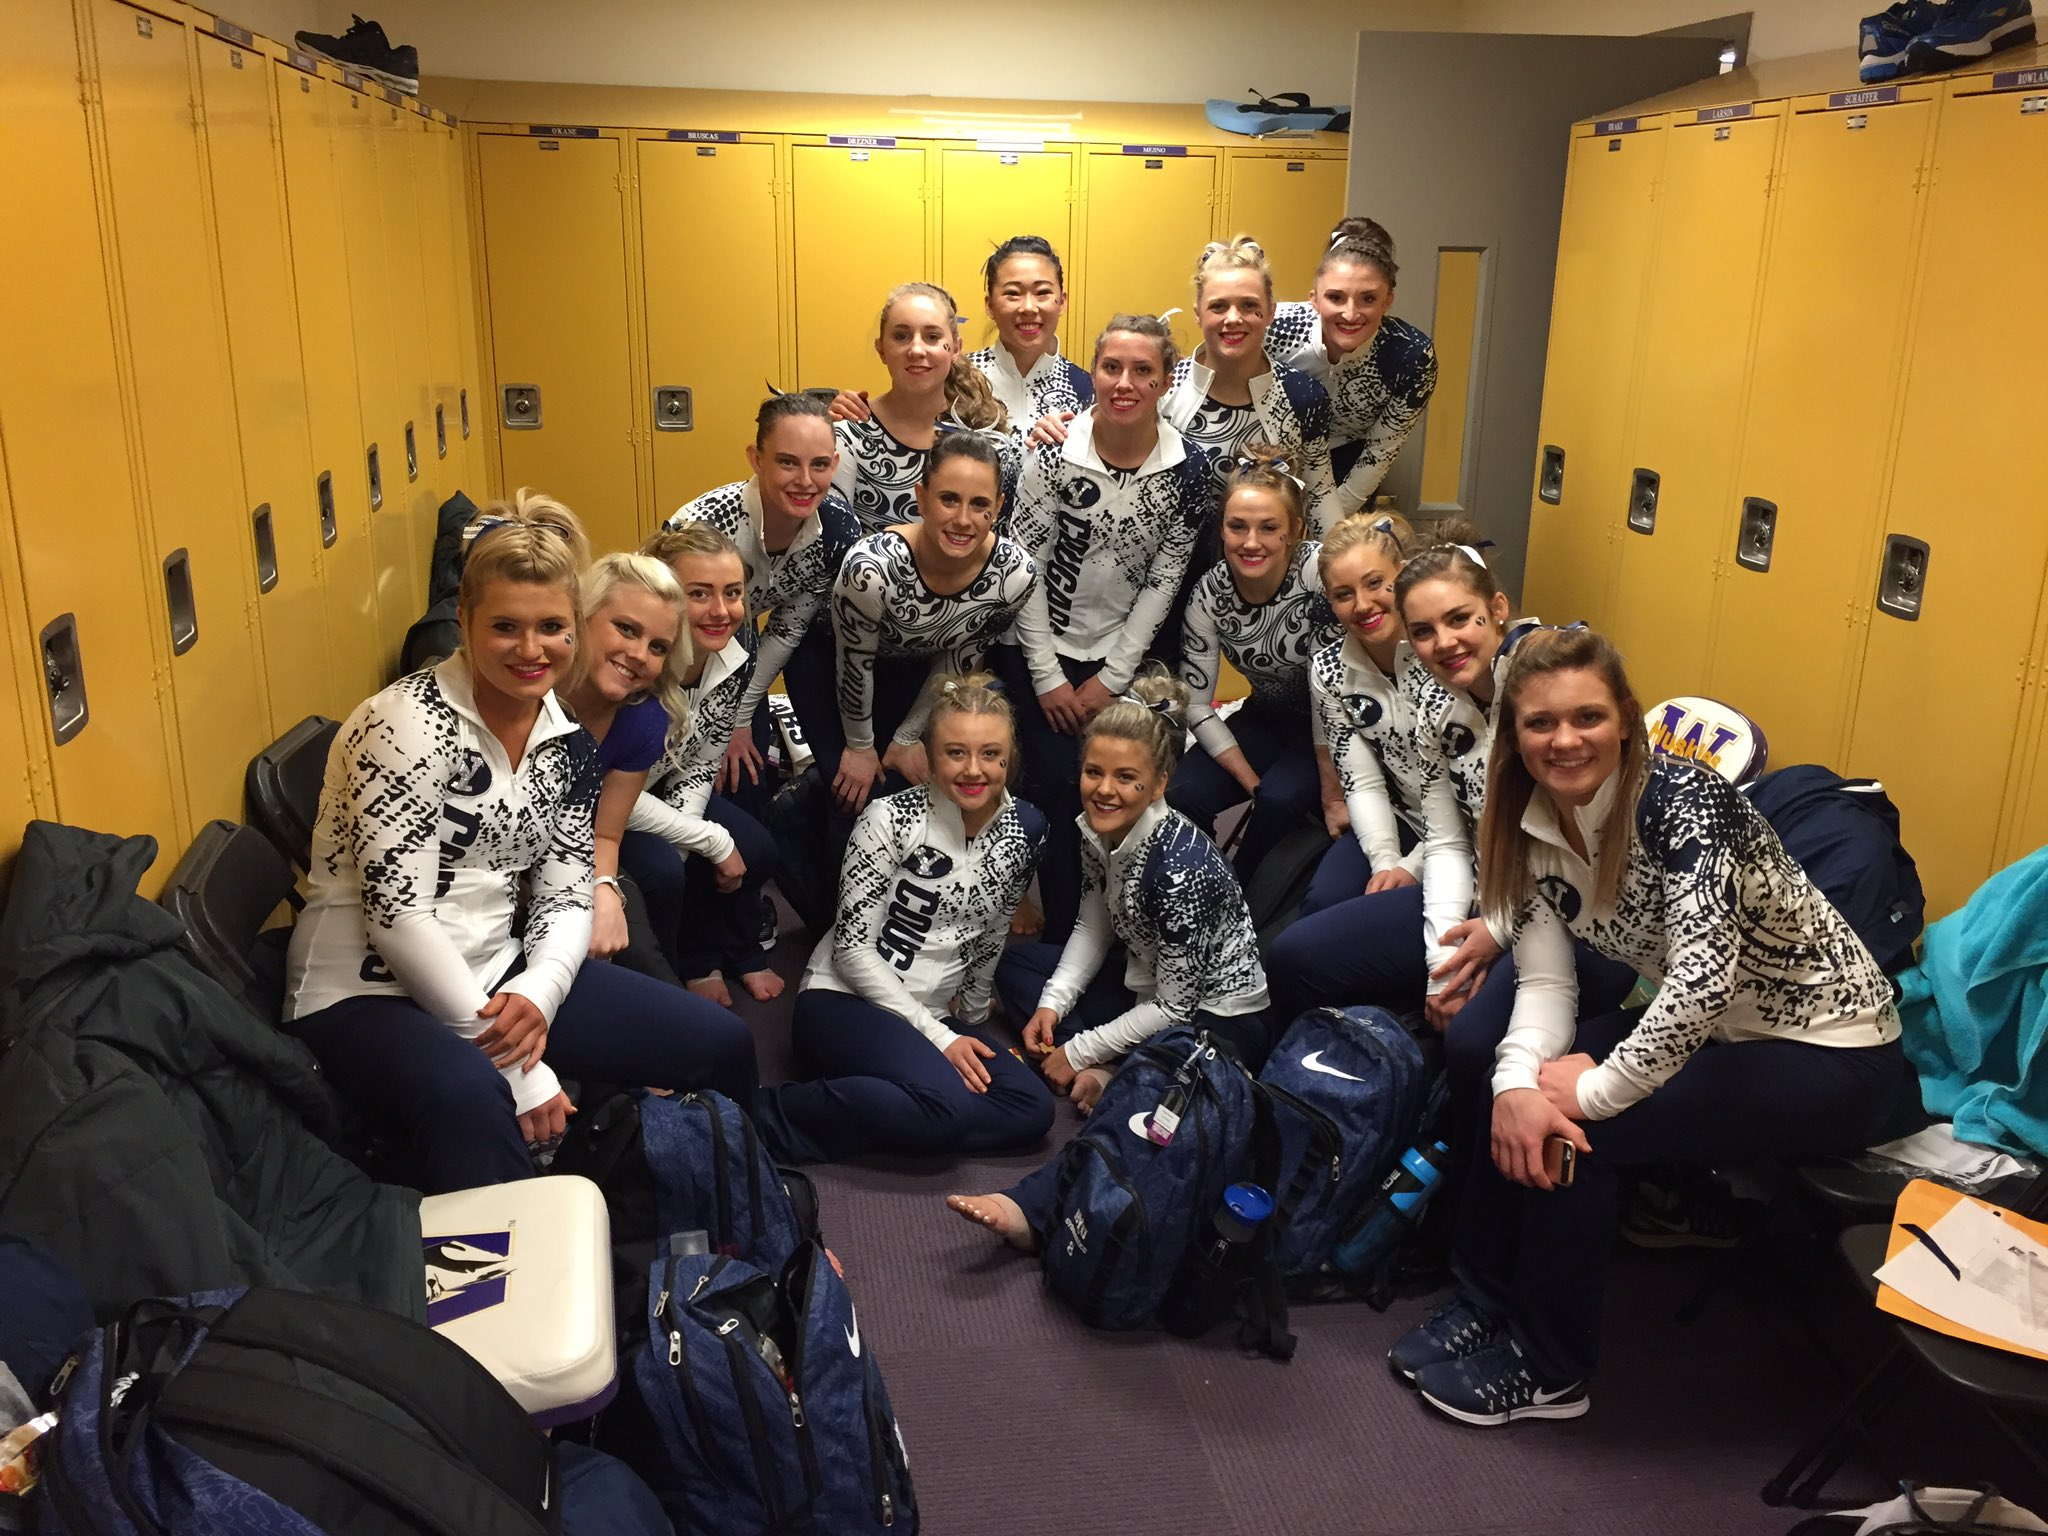 Ready for march-out! @BYUgymnastics #NCAAgym #GoCougs https://t.co/W5MOzbPgjB